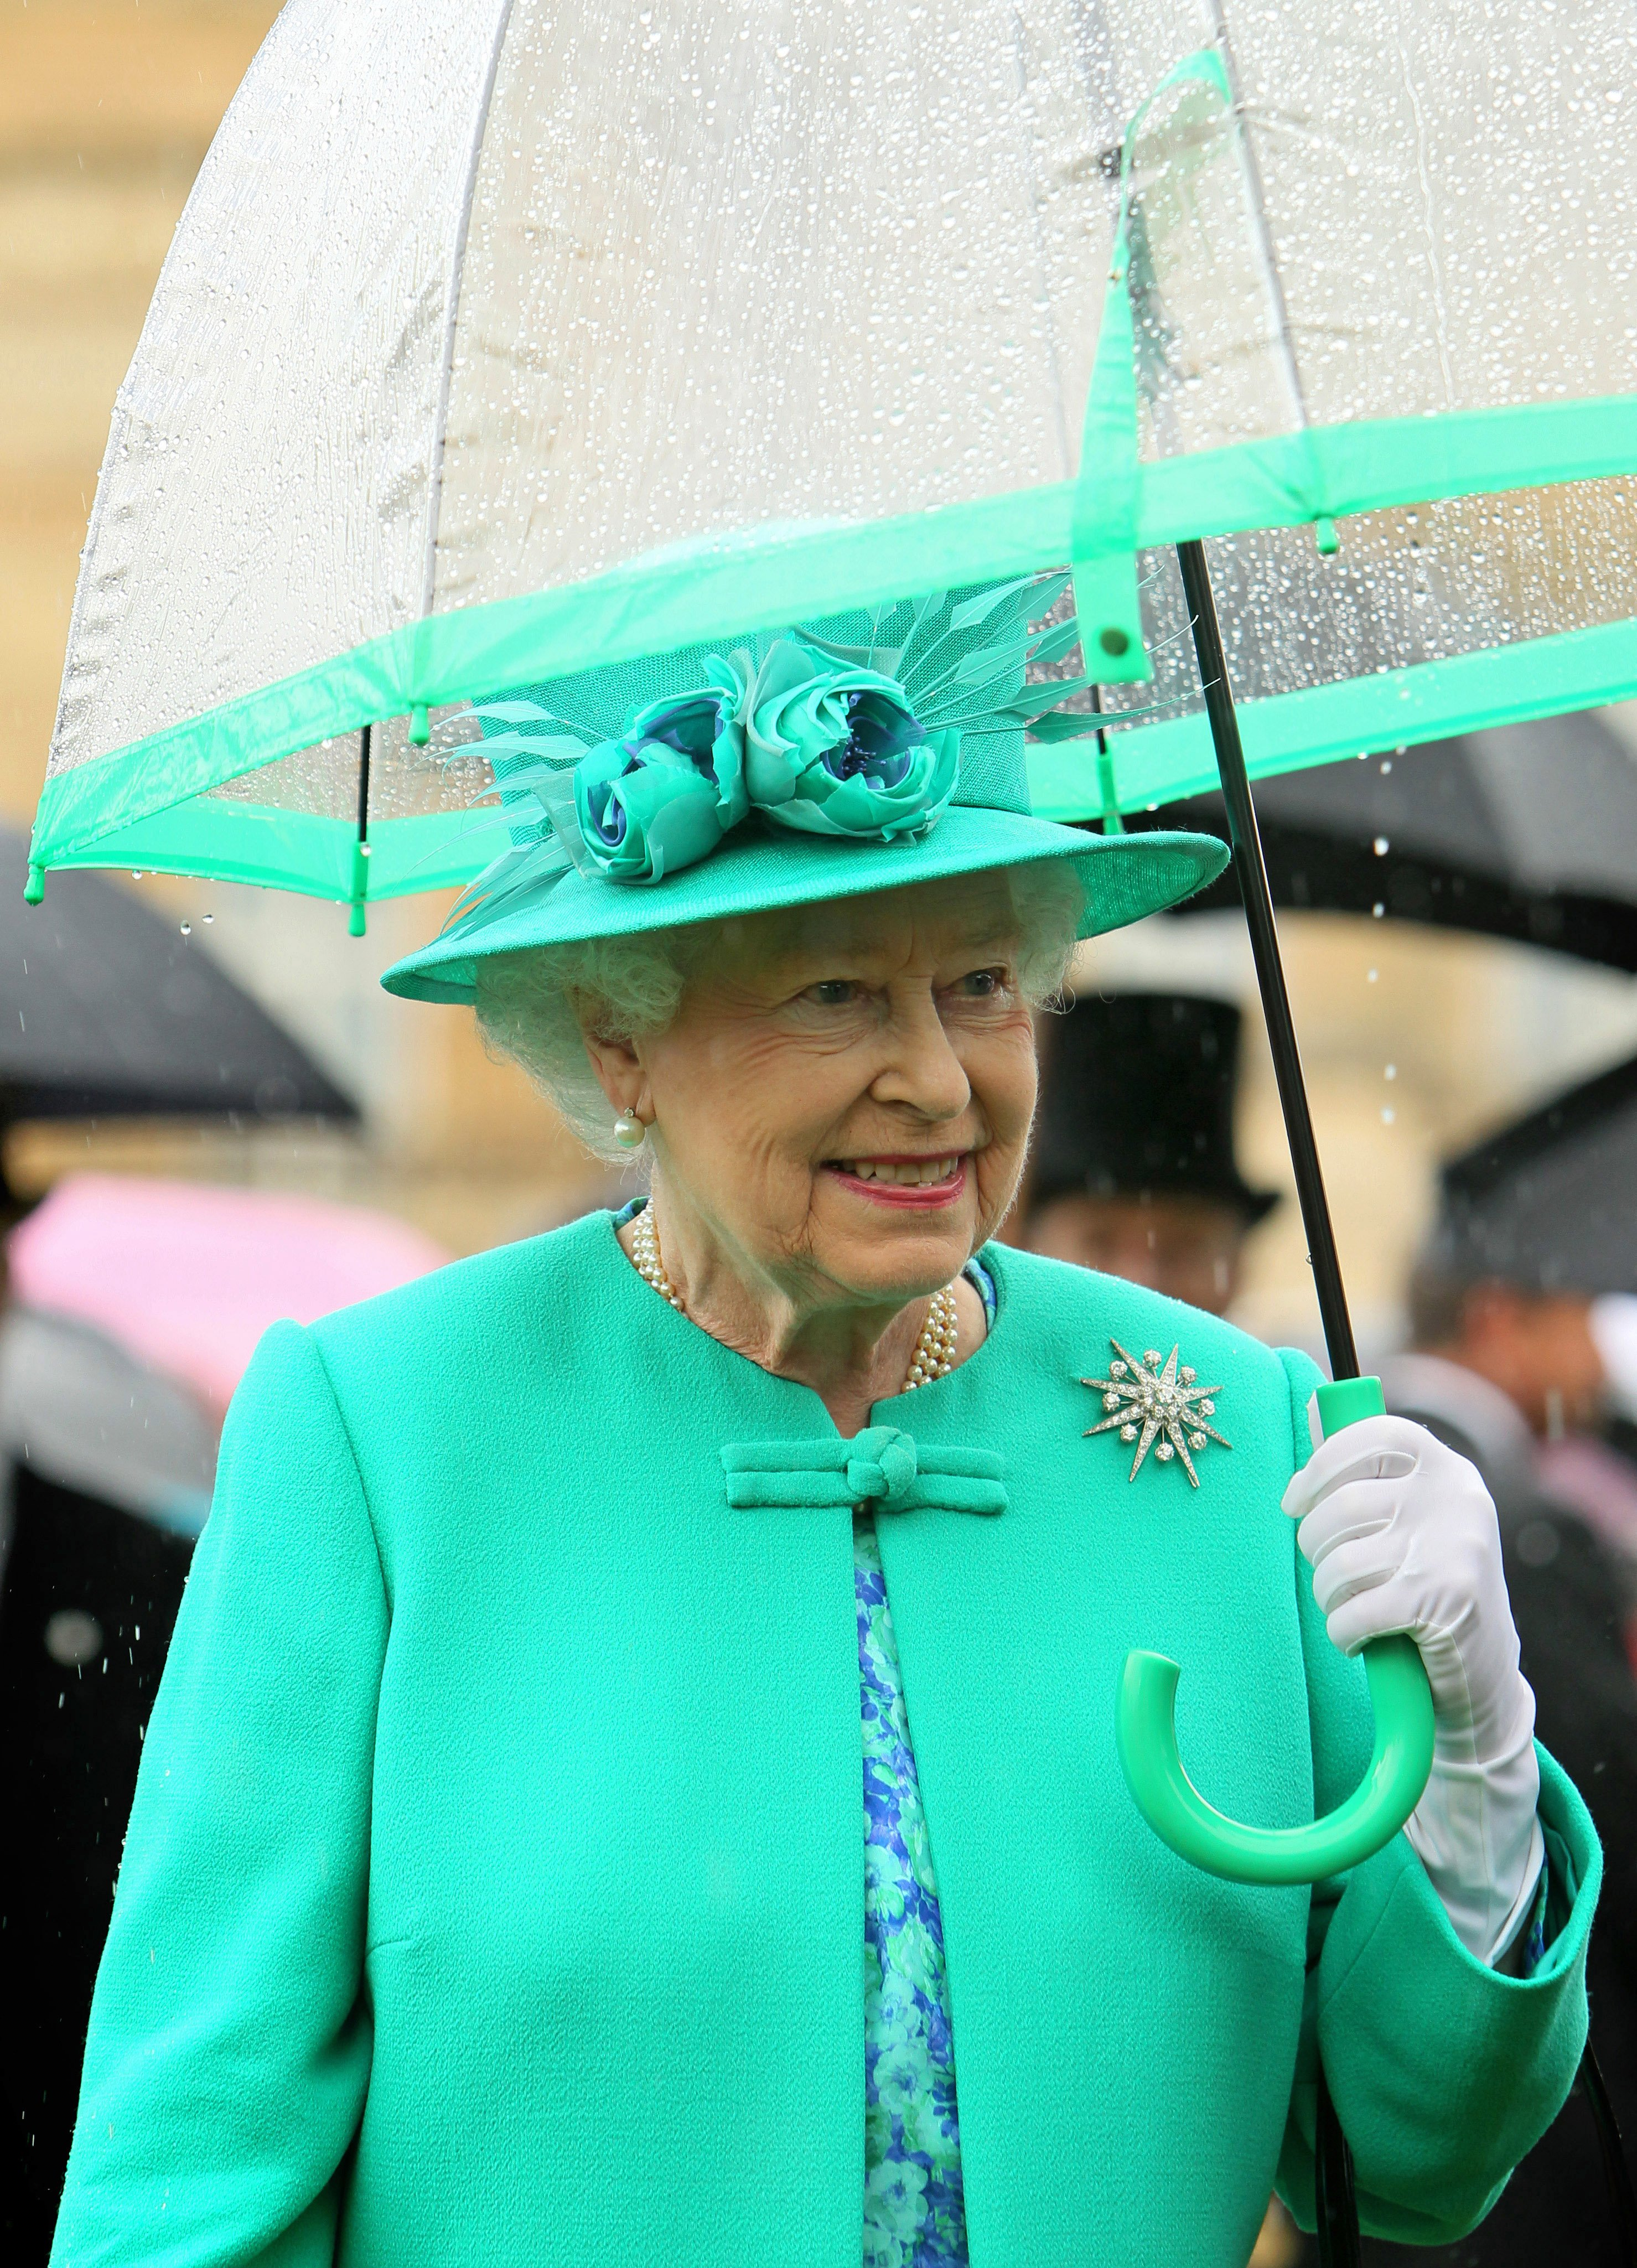 Queen Elizabeth II shelters from the rain under an umbrella at Buckingham Palace on July 19, 2011 in London, England | Photo: Getty Images